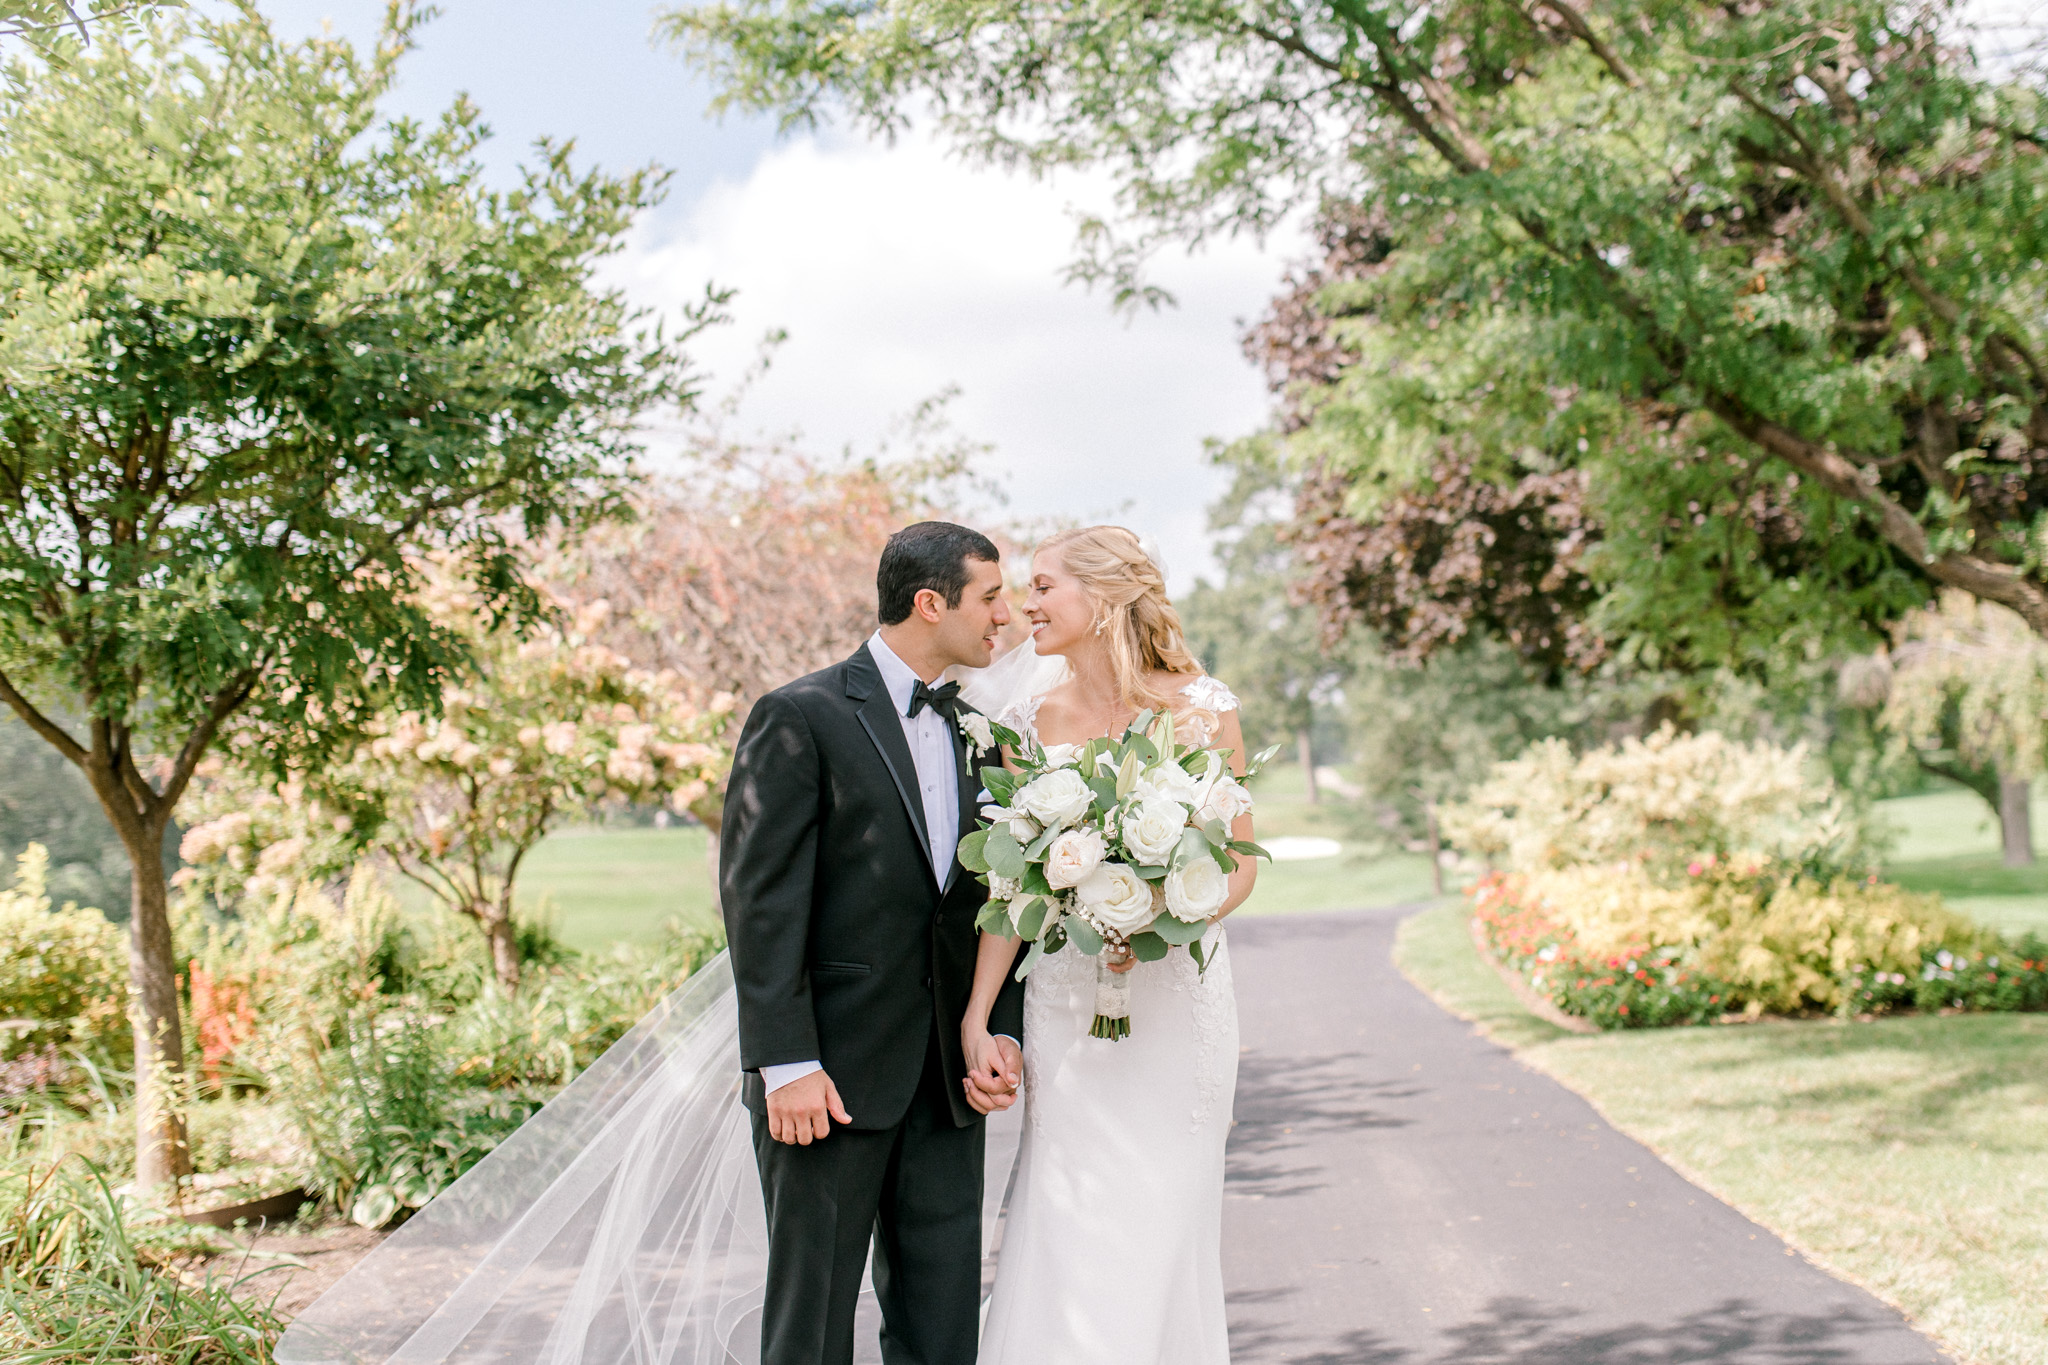 Stunning Country Club Wedding in Kalamazoo Michigan | West Michigan Wedding Photography | Classic Black and White Wedding